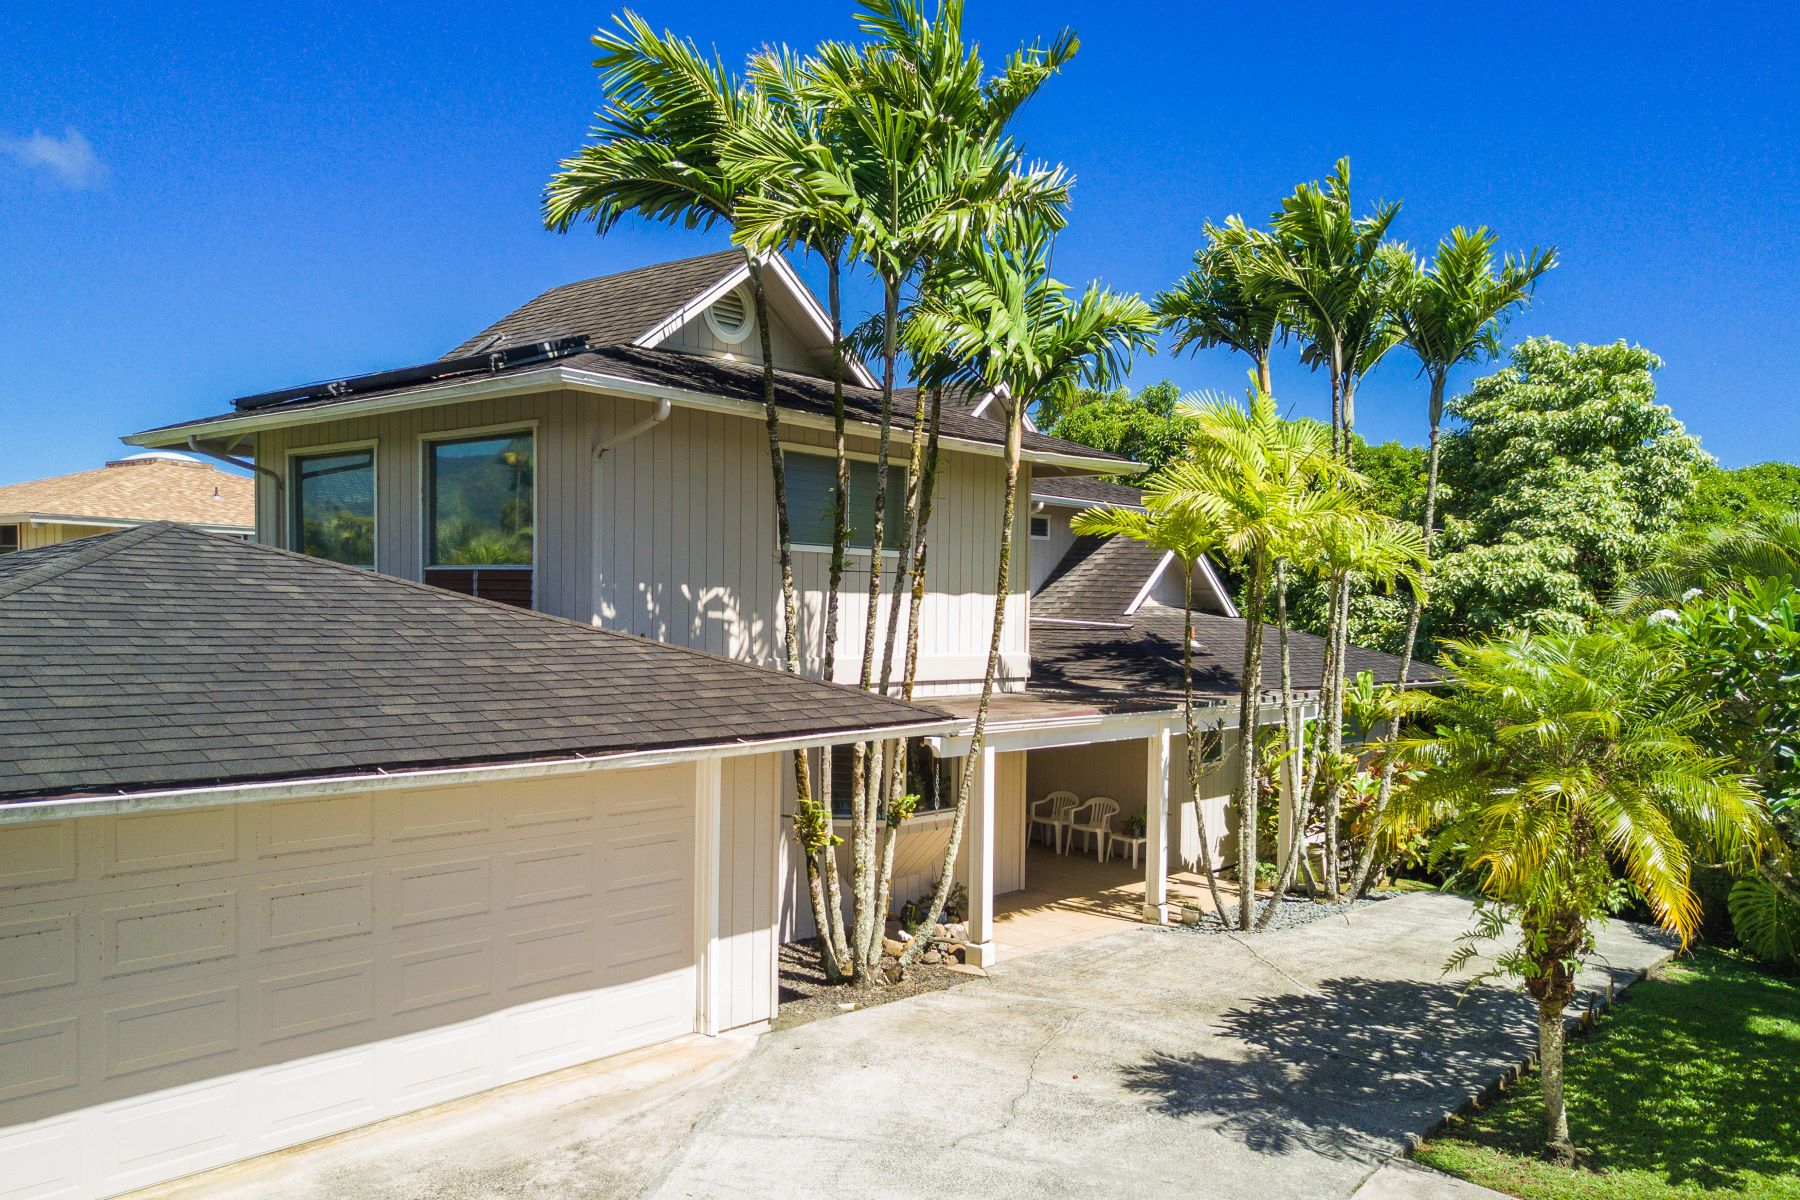 Single Family Home for Sale at Three Bedroom Home with Mountain, Waterfall, Ocean Horizon Views in Princeville 4194 Kekuanaoa Lane Princeville, Hawaii 96722 United States